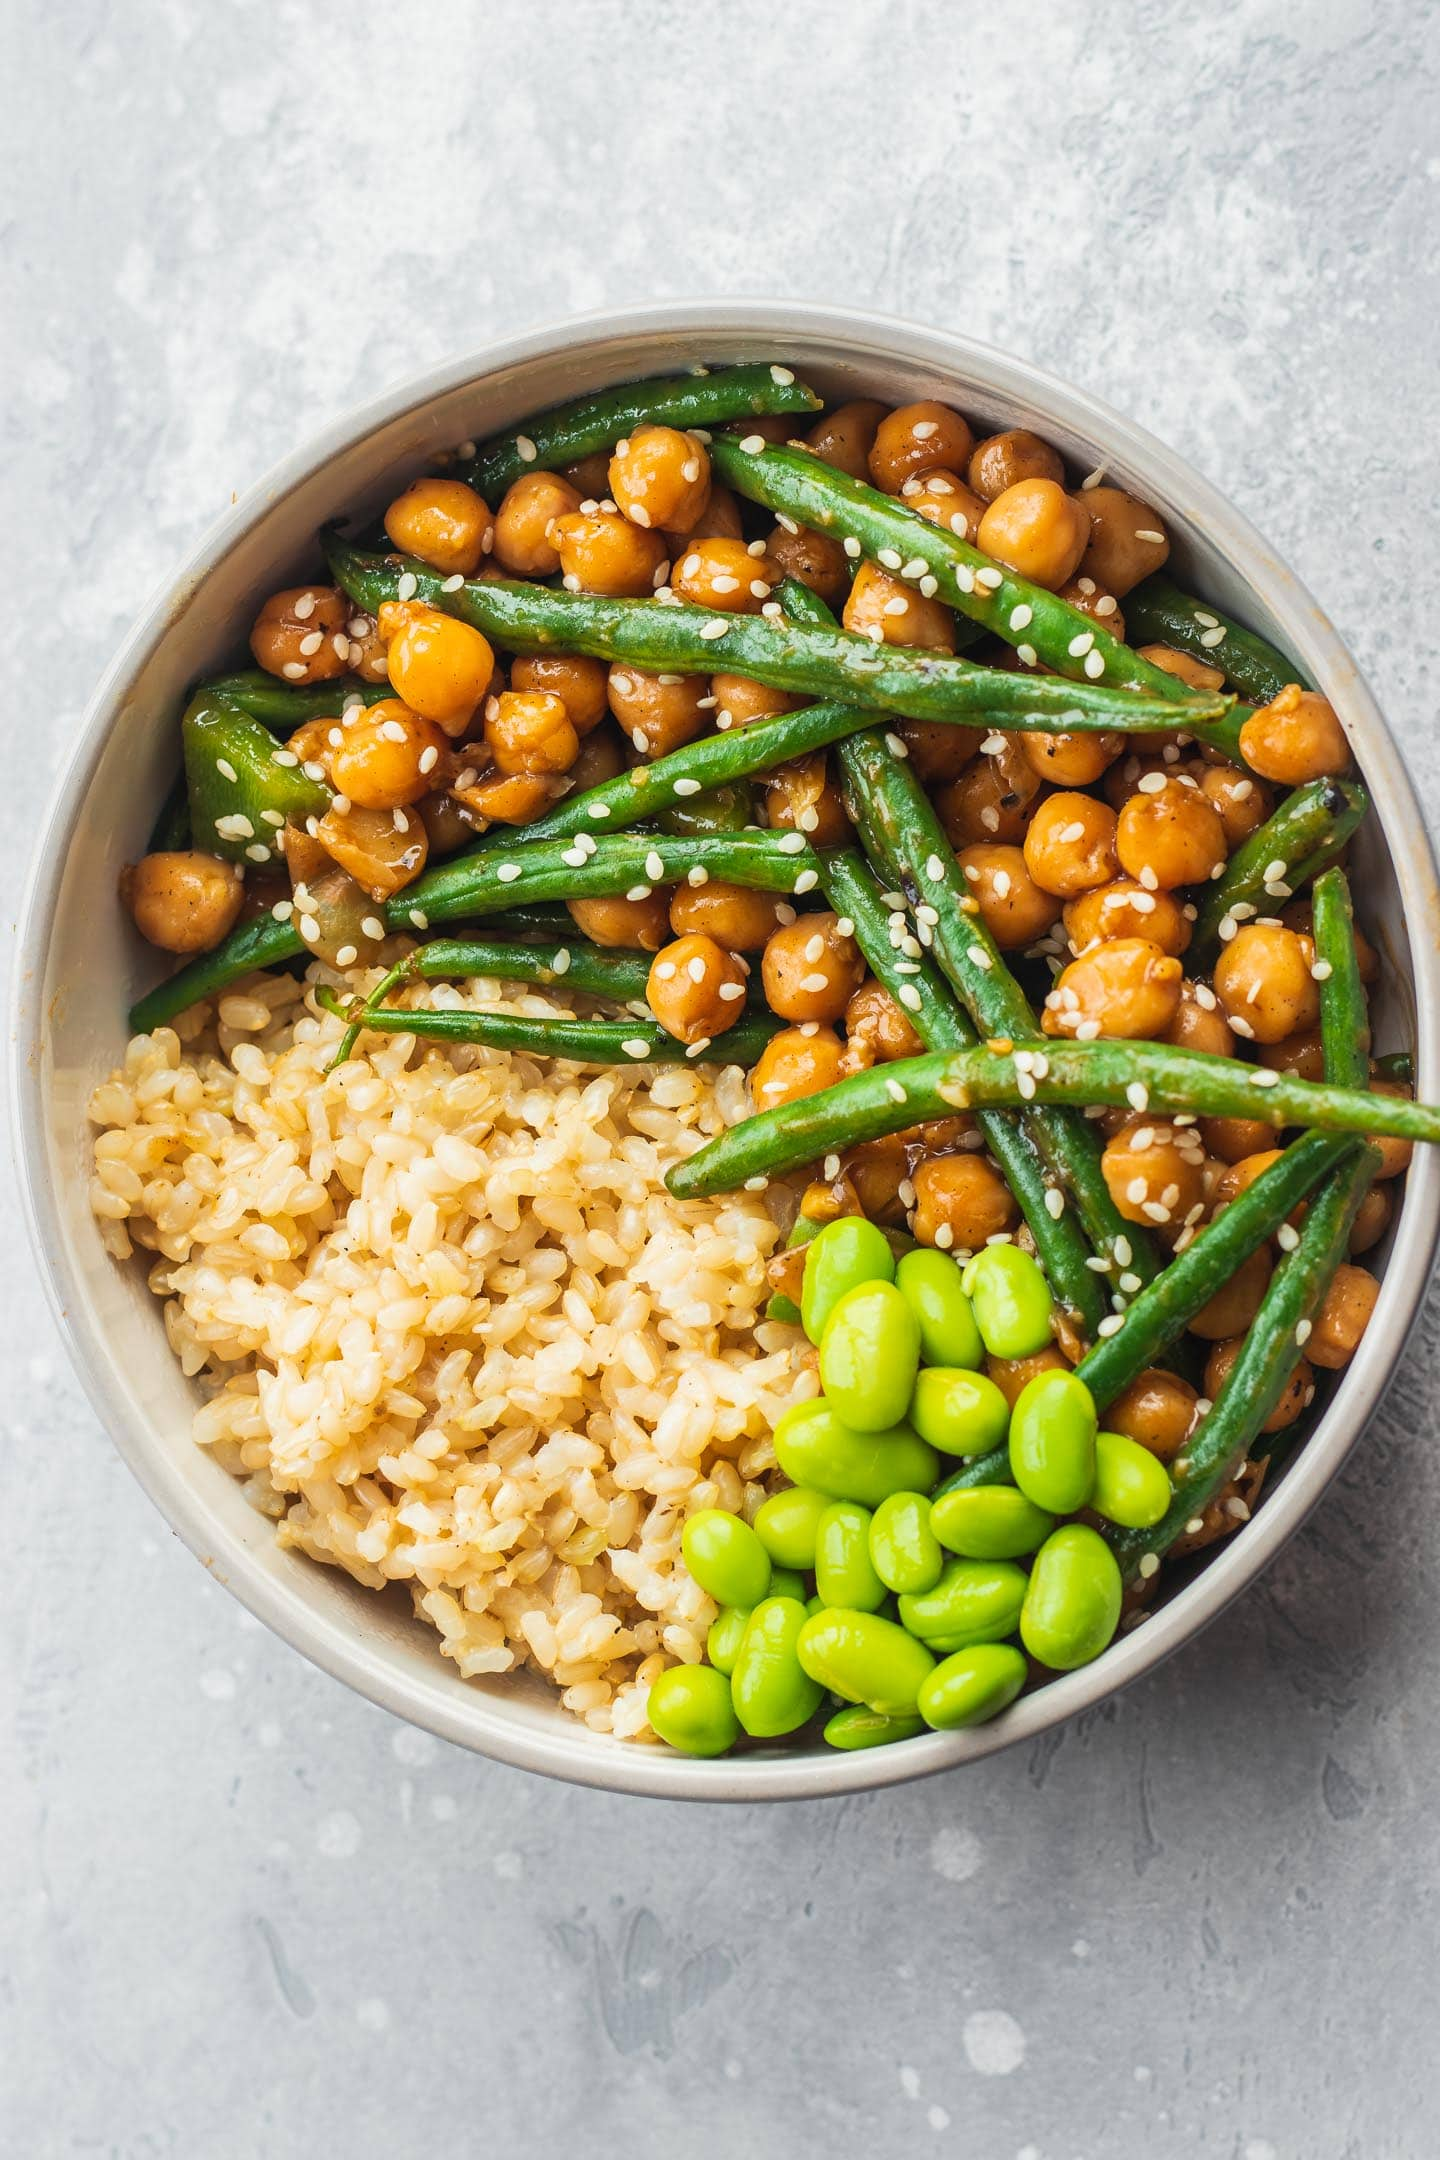 5/5 Visite Sweet And Sour Chickpeas And Green Beans